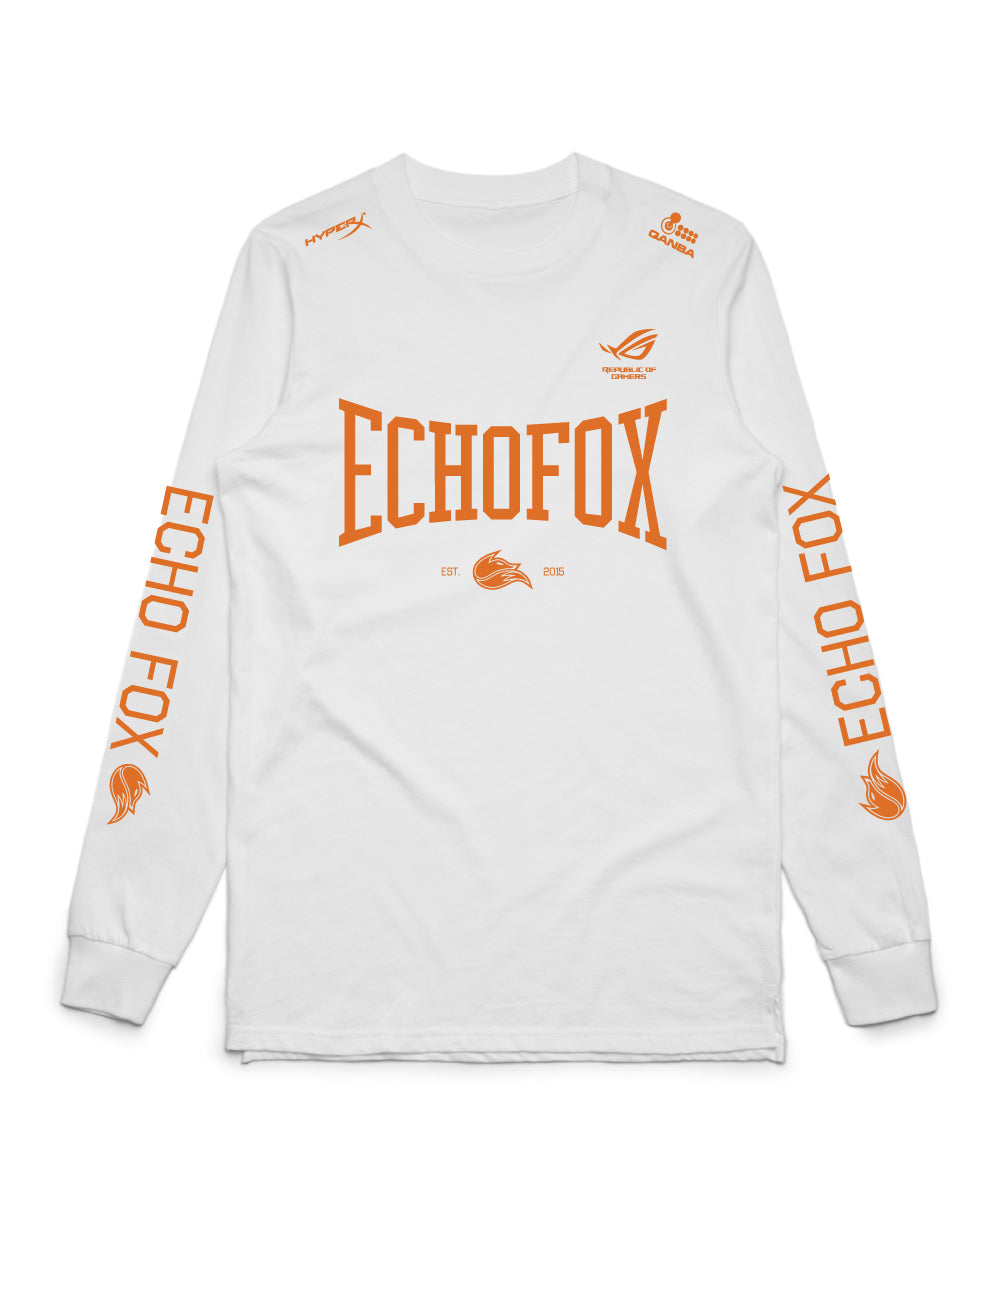 Echo Fox 2018 Long Sleeve Dryfit Tee